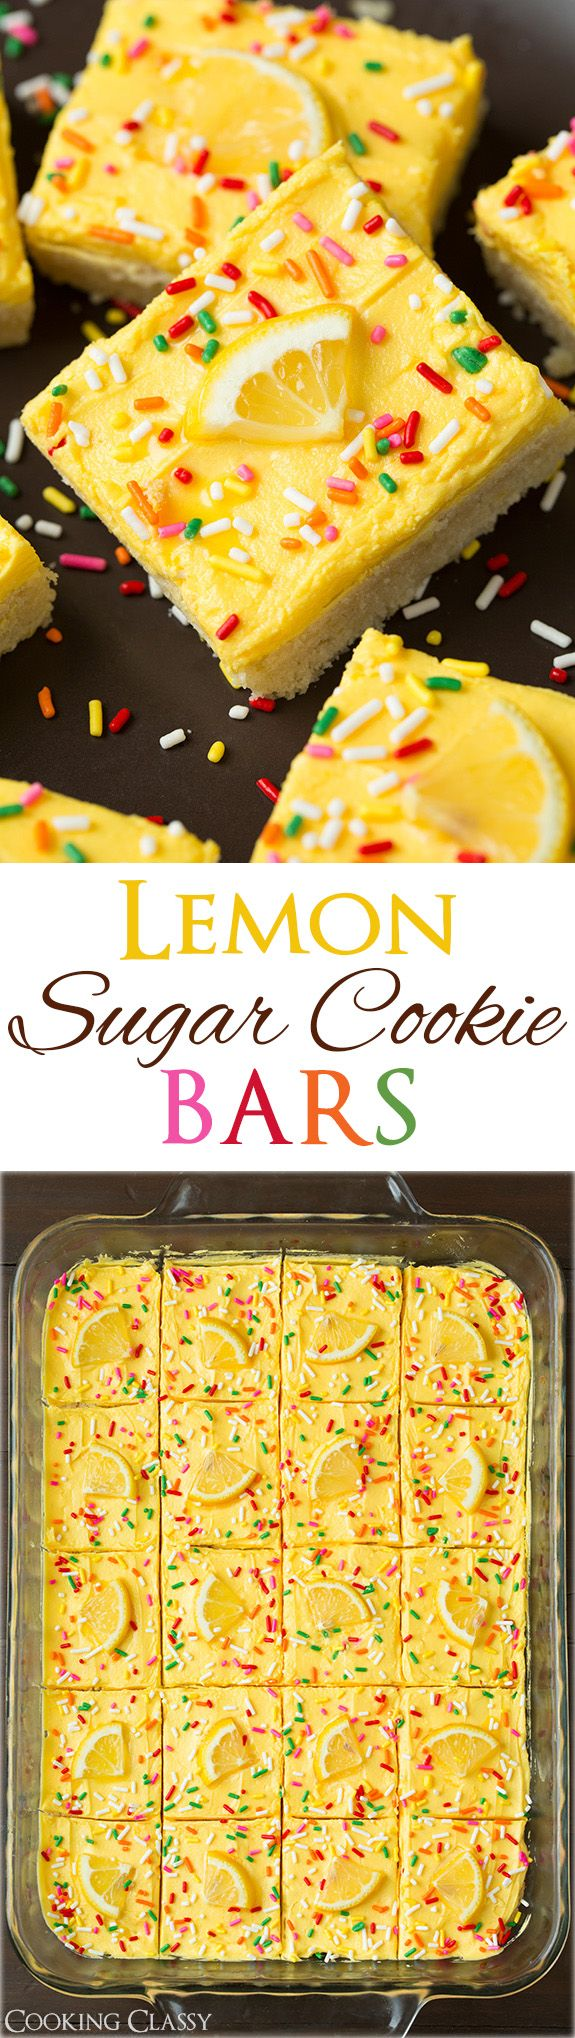 Lemon Sugar Cookie Bars - these are one of the BEST summer treats! They are so lemony and refreshing and they are as soft as lofthouse cookies.